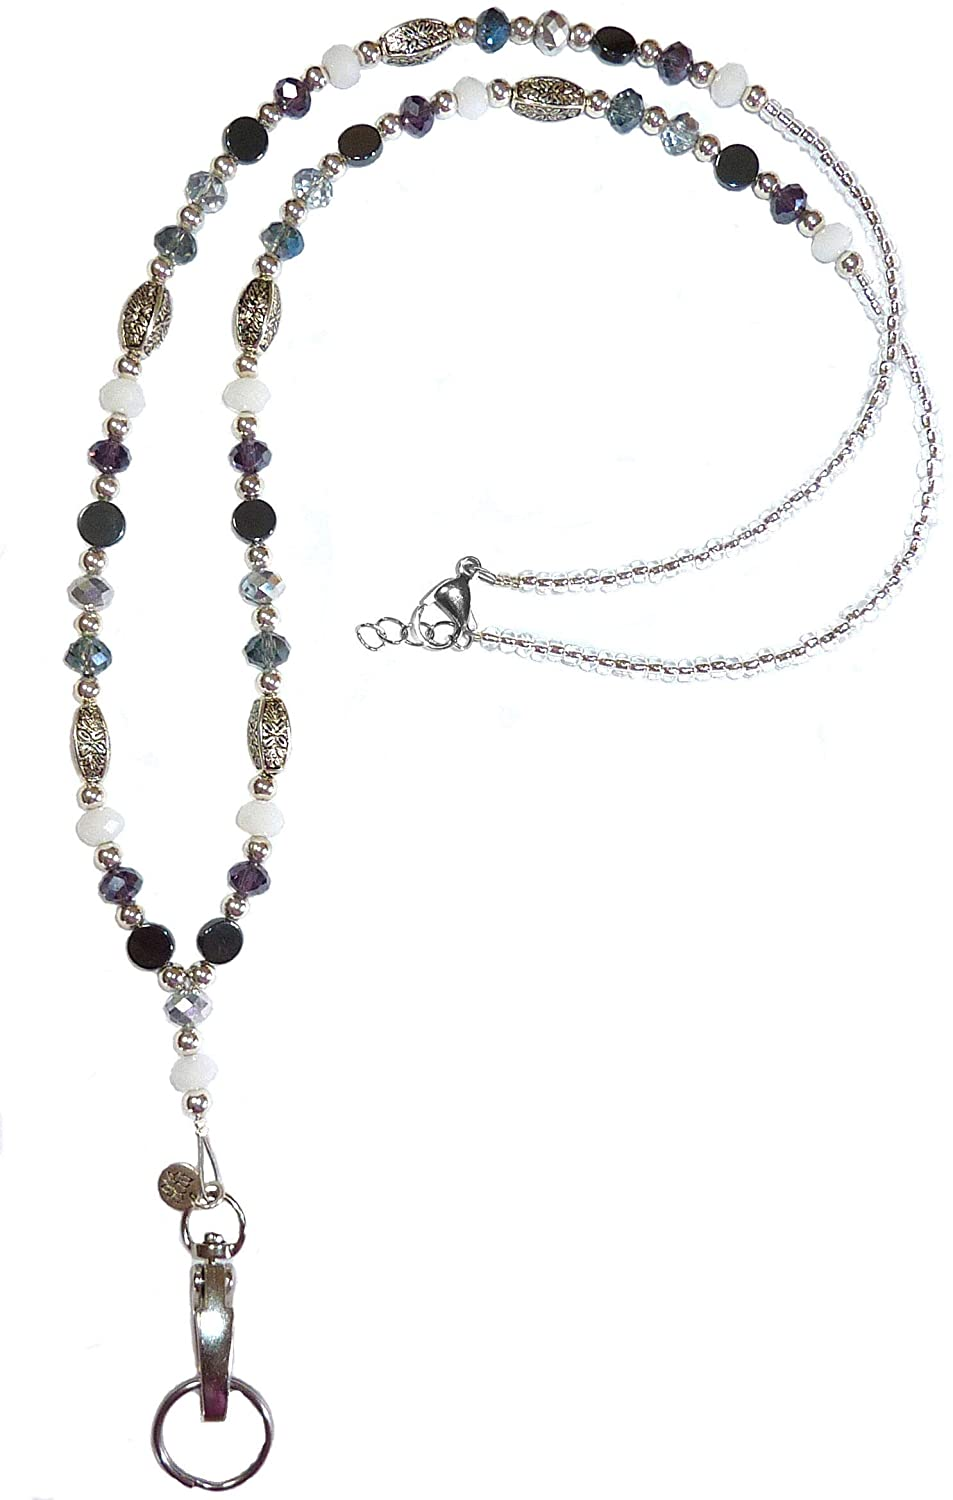 Artistic Multicolored Women's Beaded Fashion Necklace Lanyard, Made in USA, Slim and Beautiful, Super Durable for Badge, Keys, ID, 34 inches Long (Multi Non Breakaway (Stronger))